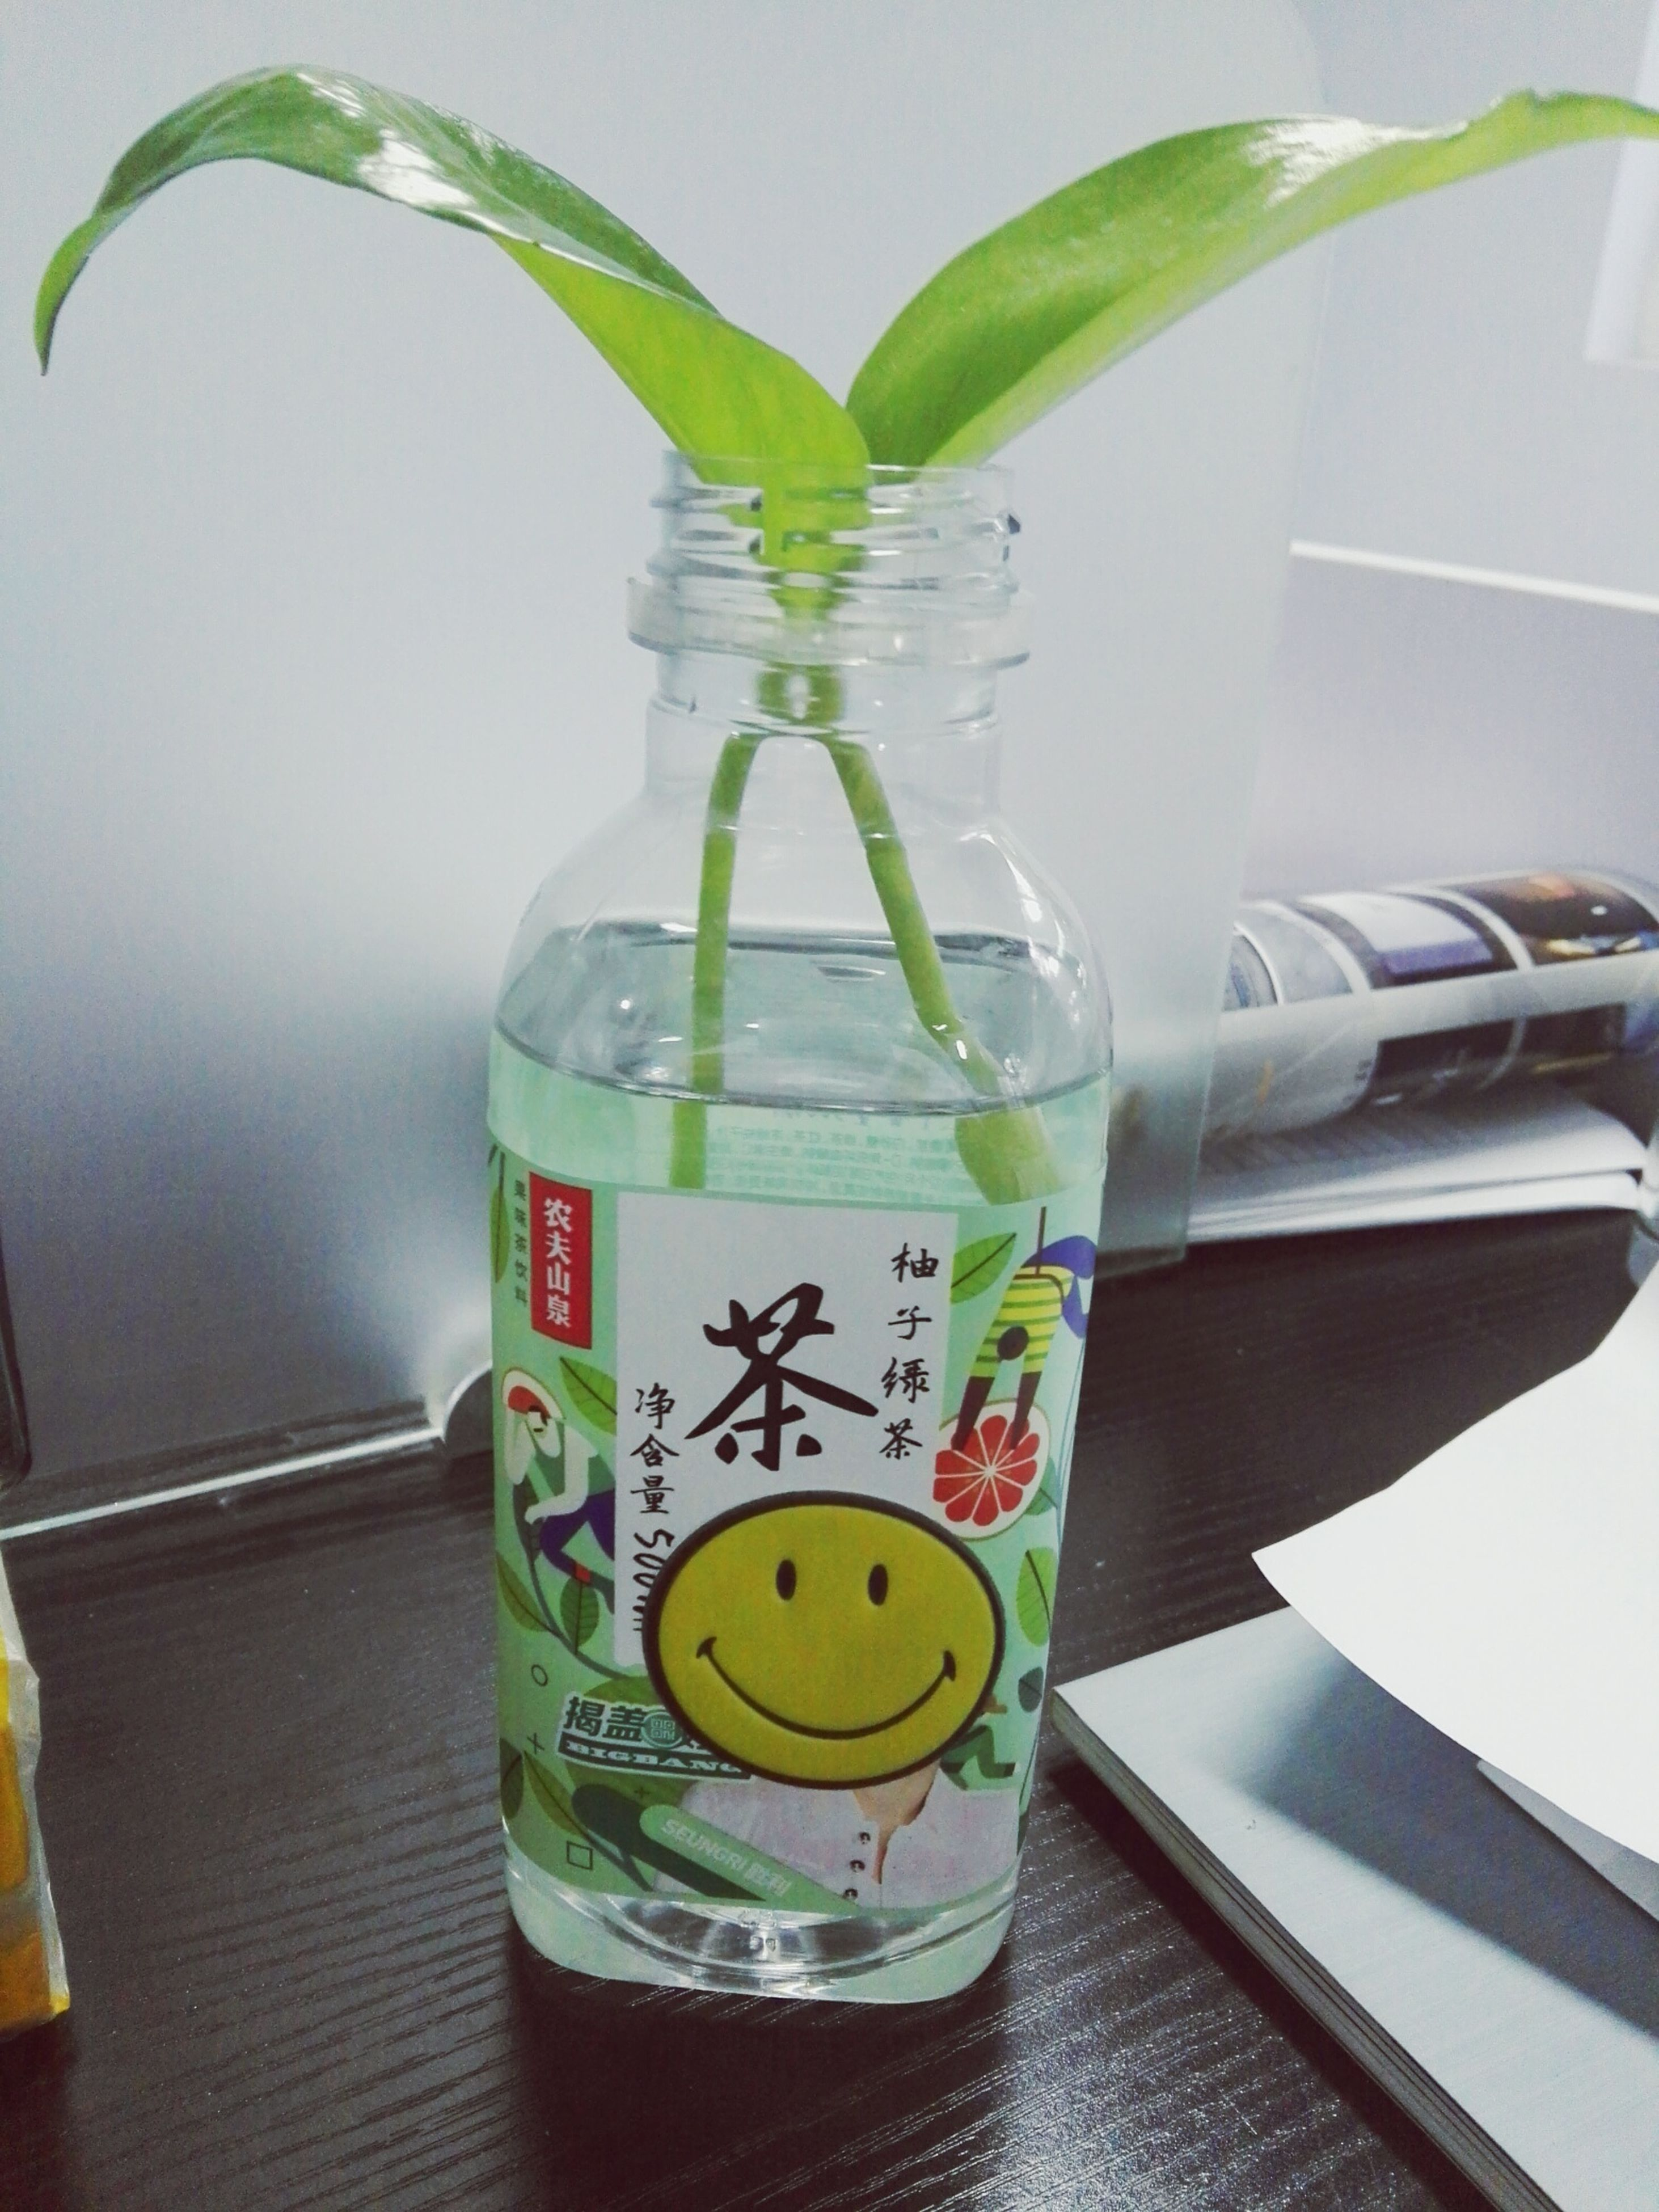 drink, refreshment, table, food and drink, bottle, drinking glass, indoors, drinking straw, lemonade, water, jar, no people, drinking water, healthy eating, freshness, close-up, green color, day, food